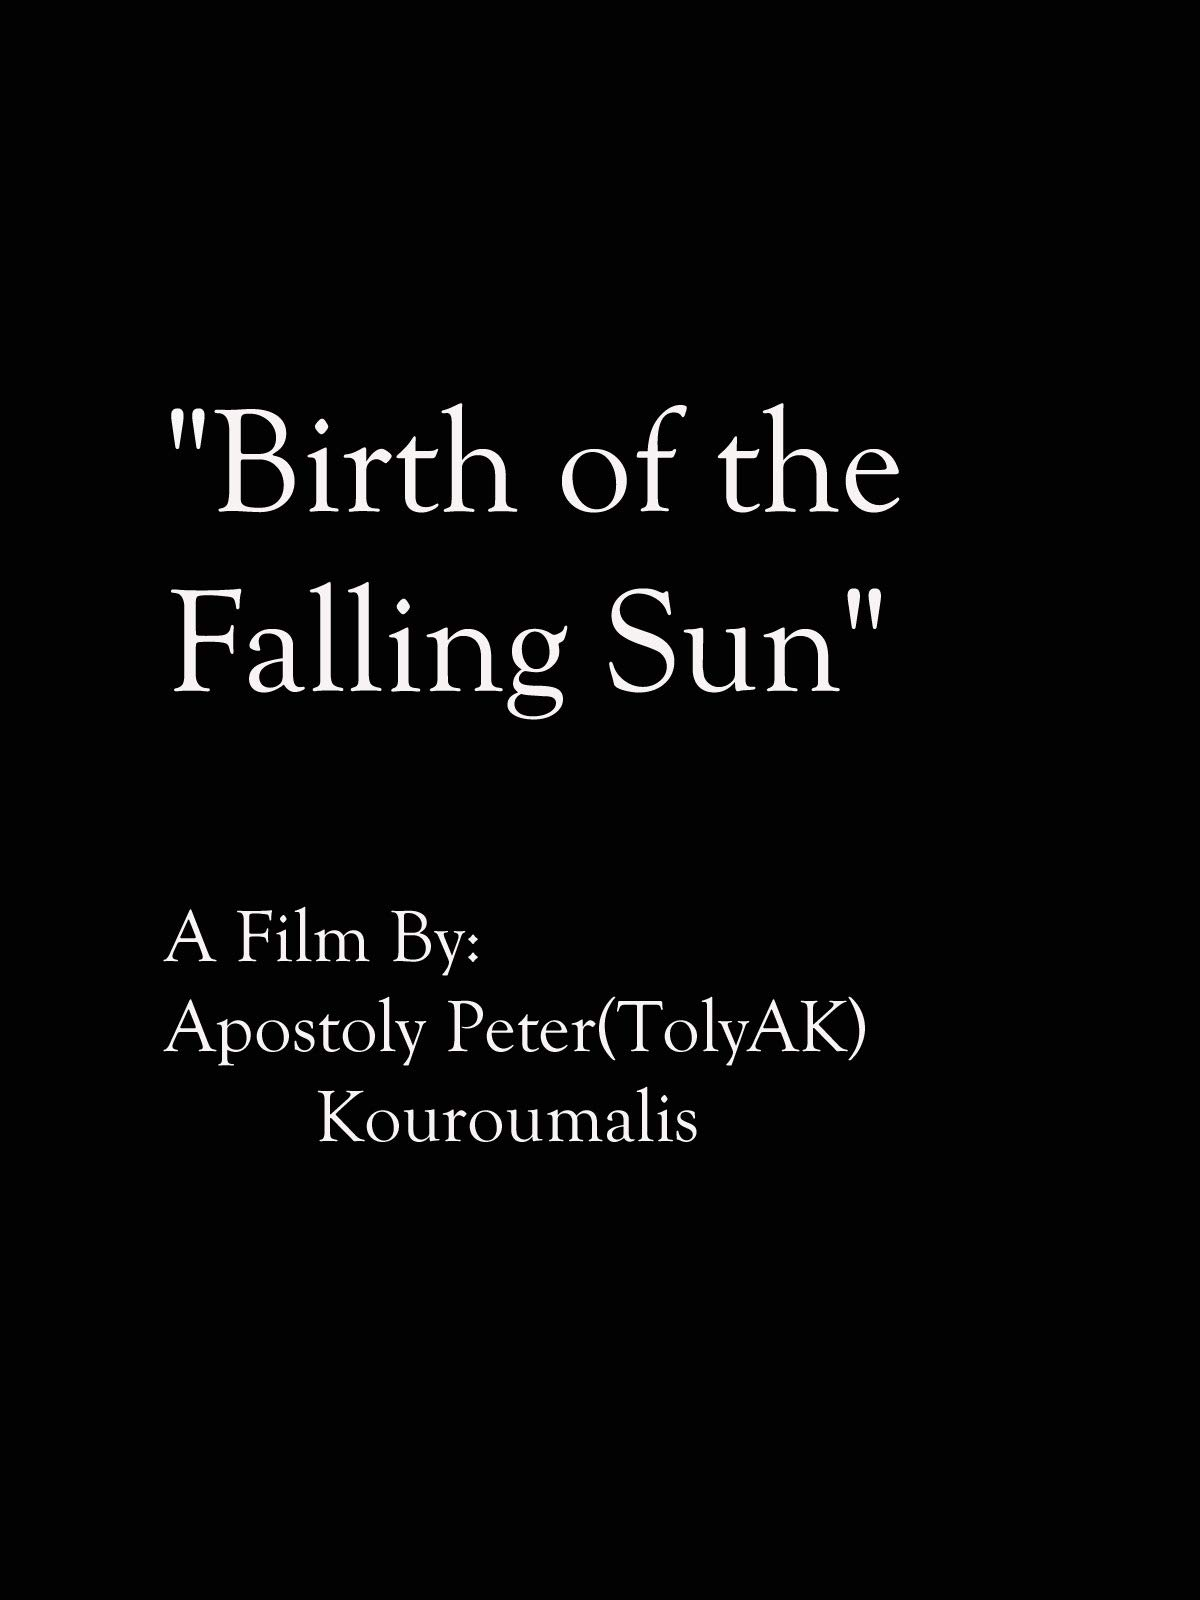 Birth of the Falling Sun